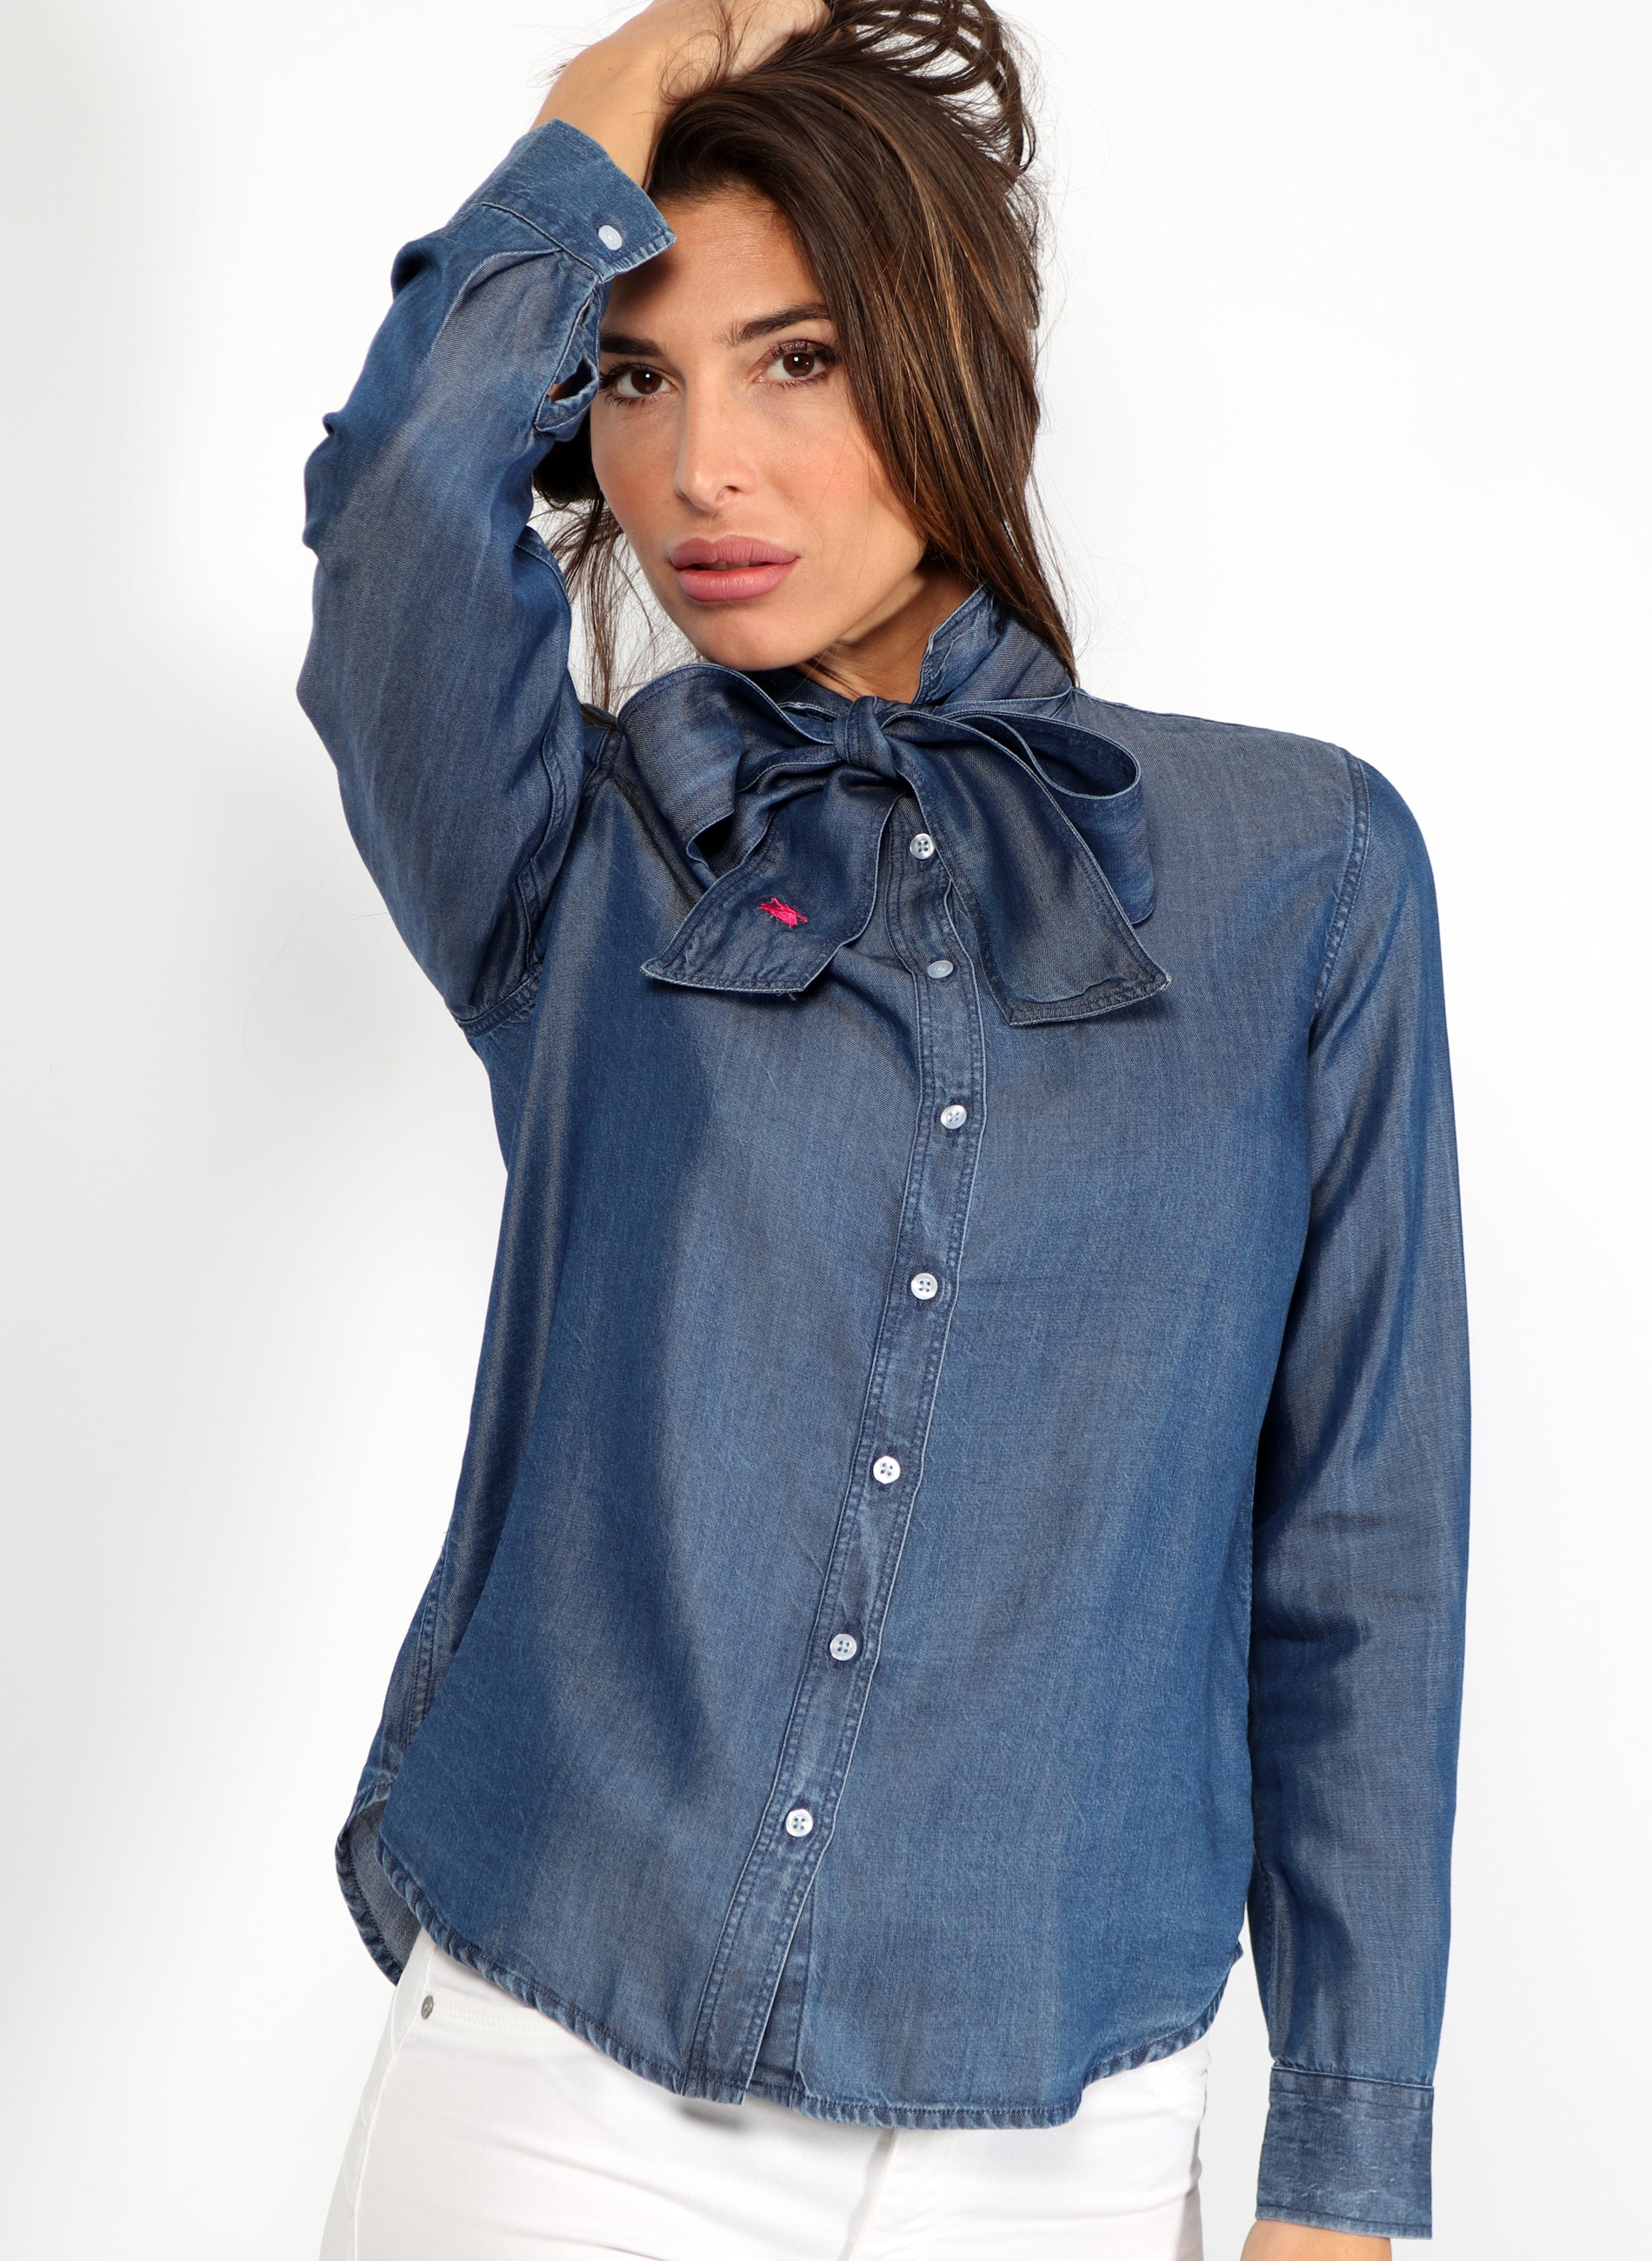 Women's Denim Shirt with Bow